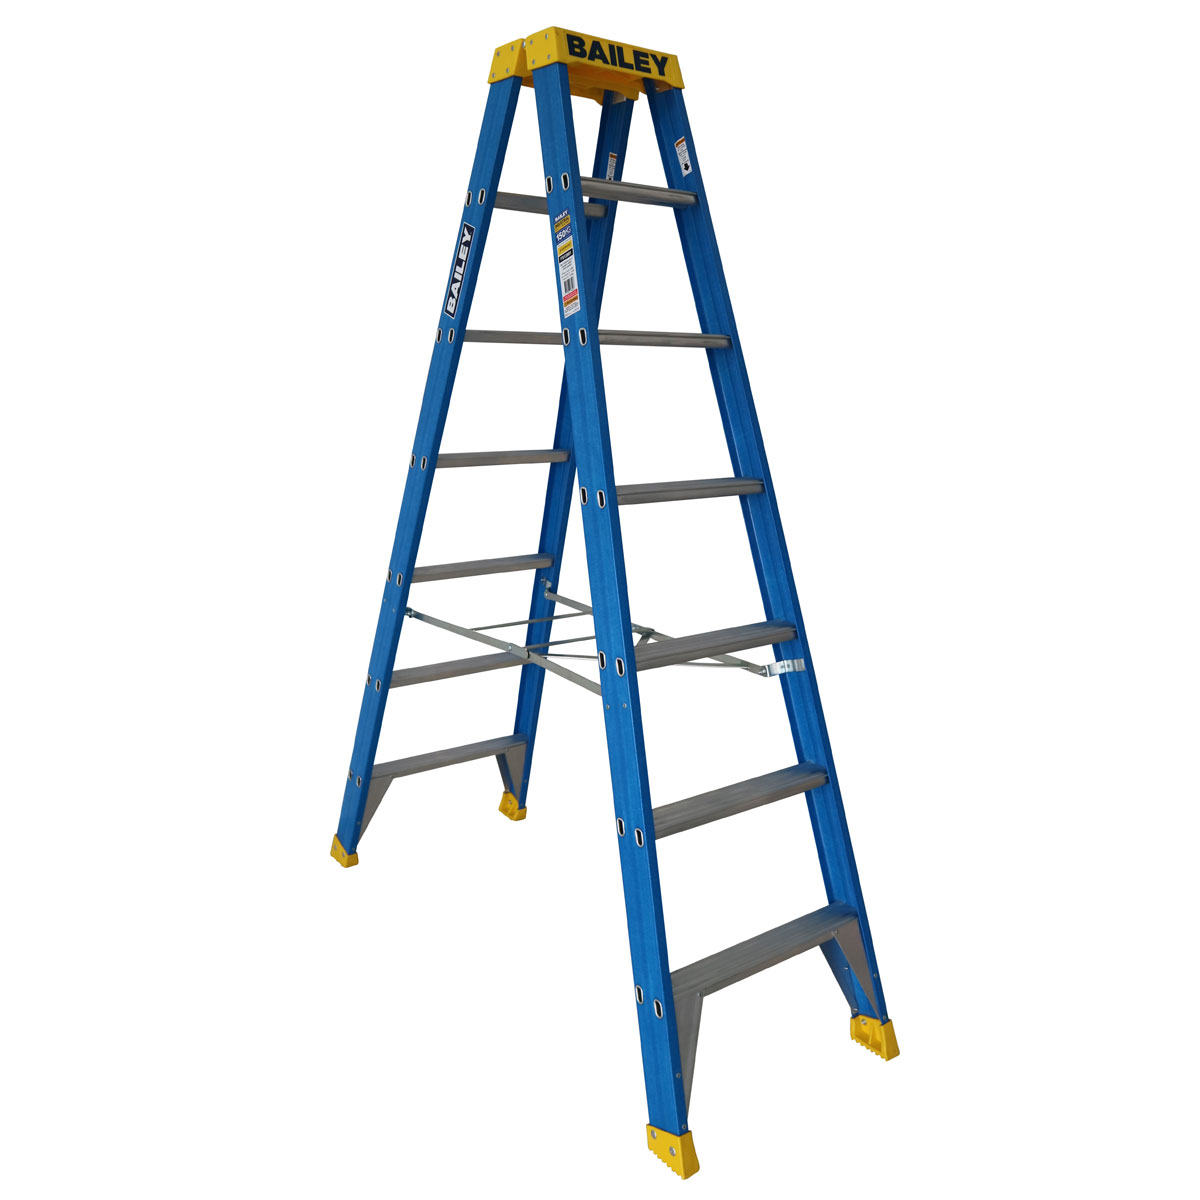 Ladder - Double Sided Fibreglass Bailey Industrial Punchlock 150kg 7-Step 2.1M